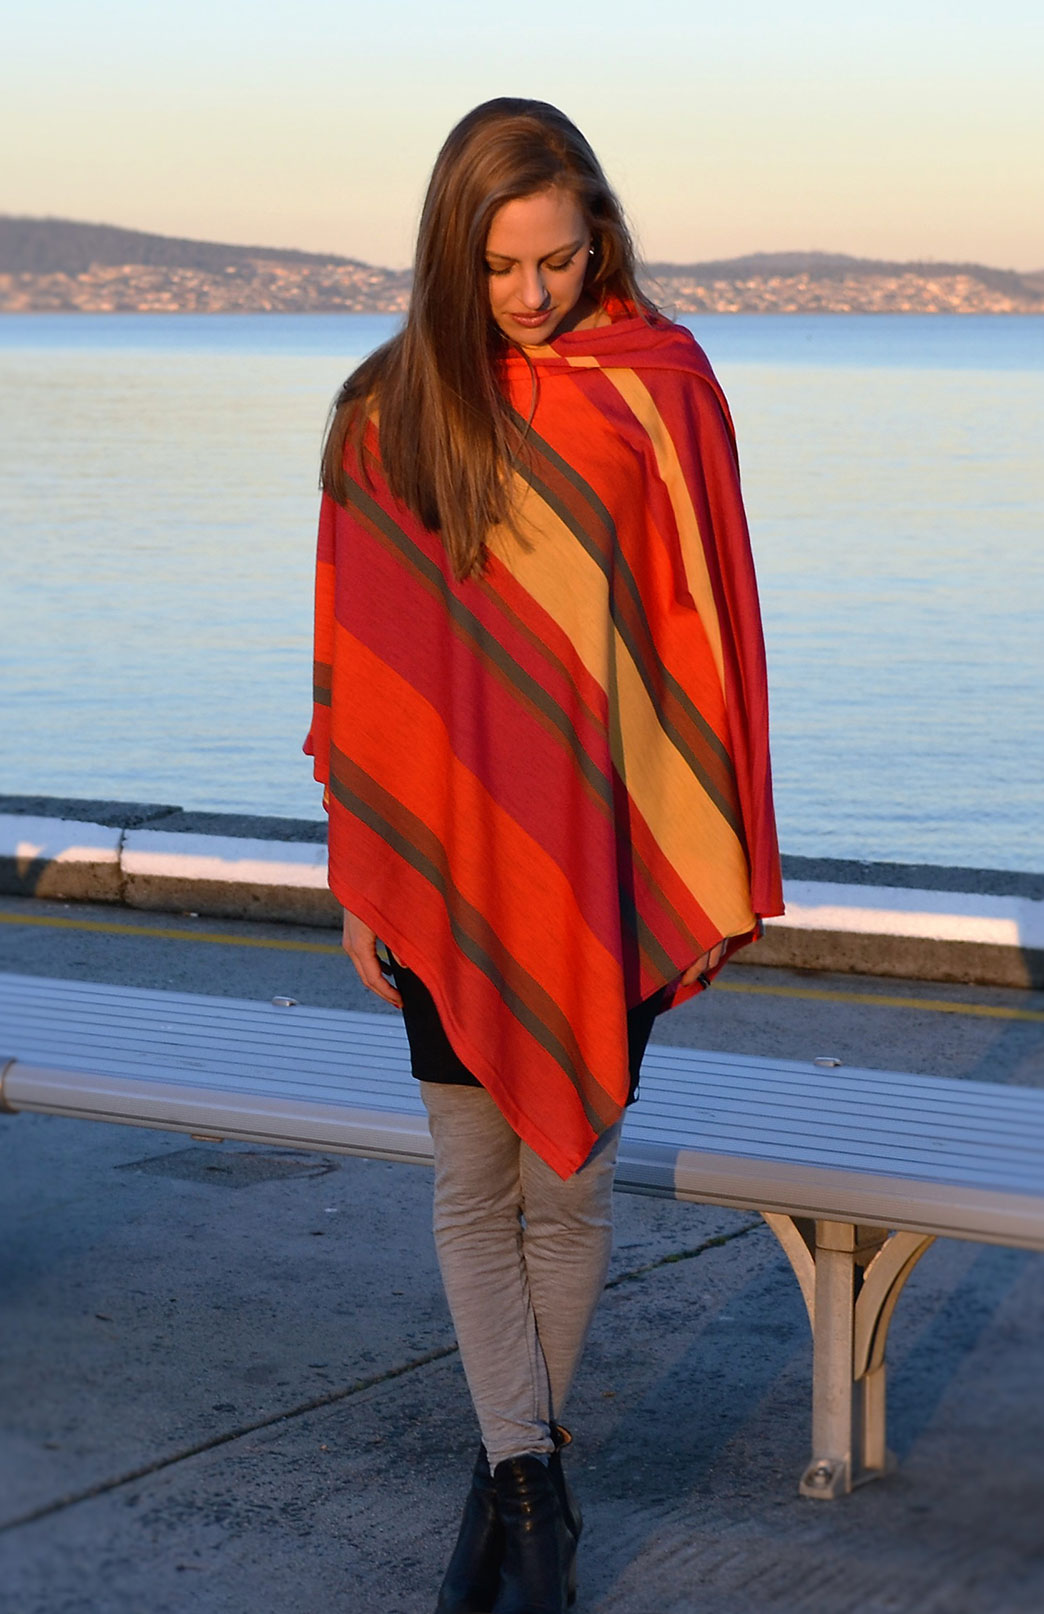 Oversized Poncho - Striped & Patterned - Women's Oversized Orange and Yellow Striped Wool Poncho - Smitten Merino Tasmania Australia